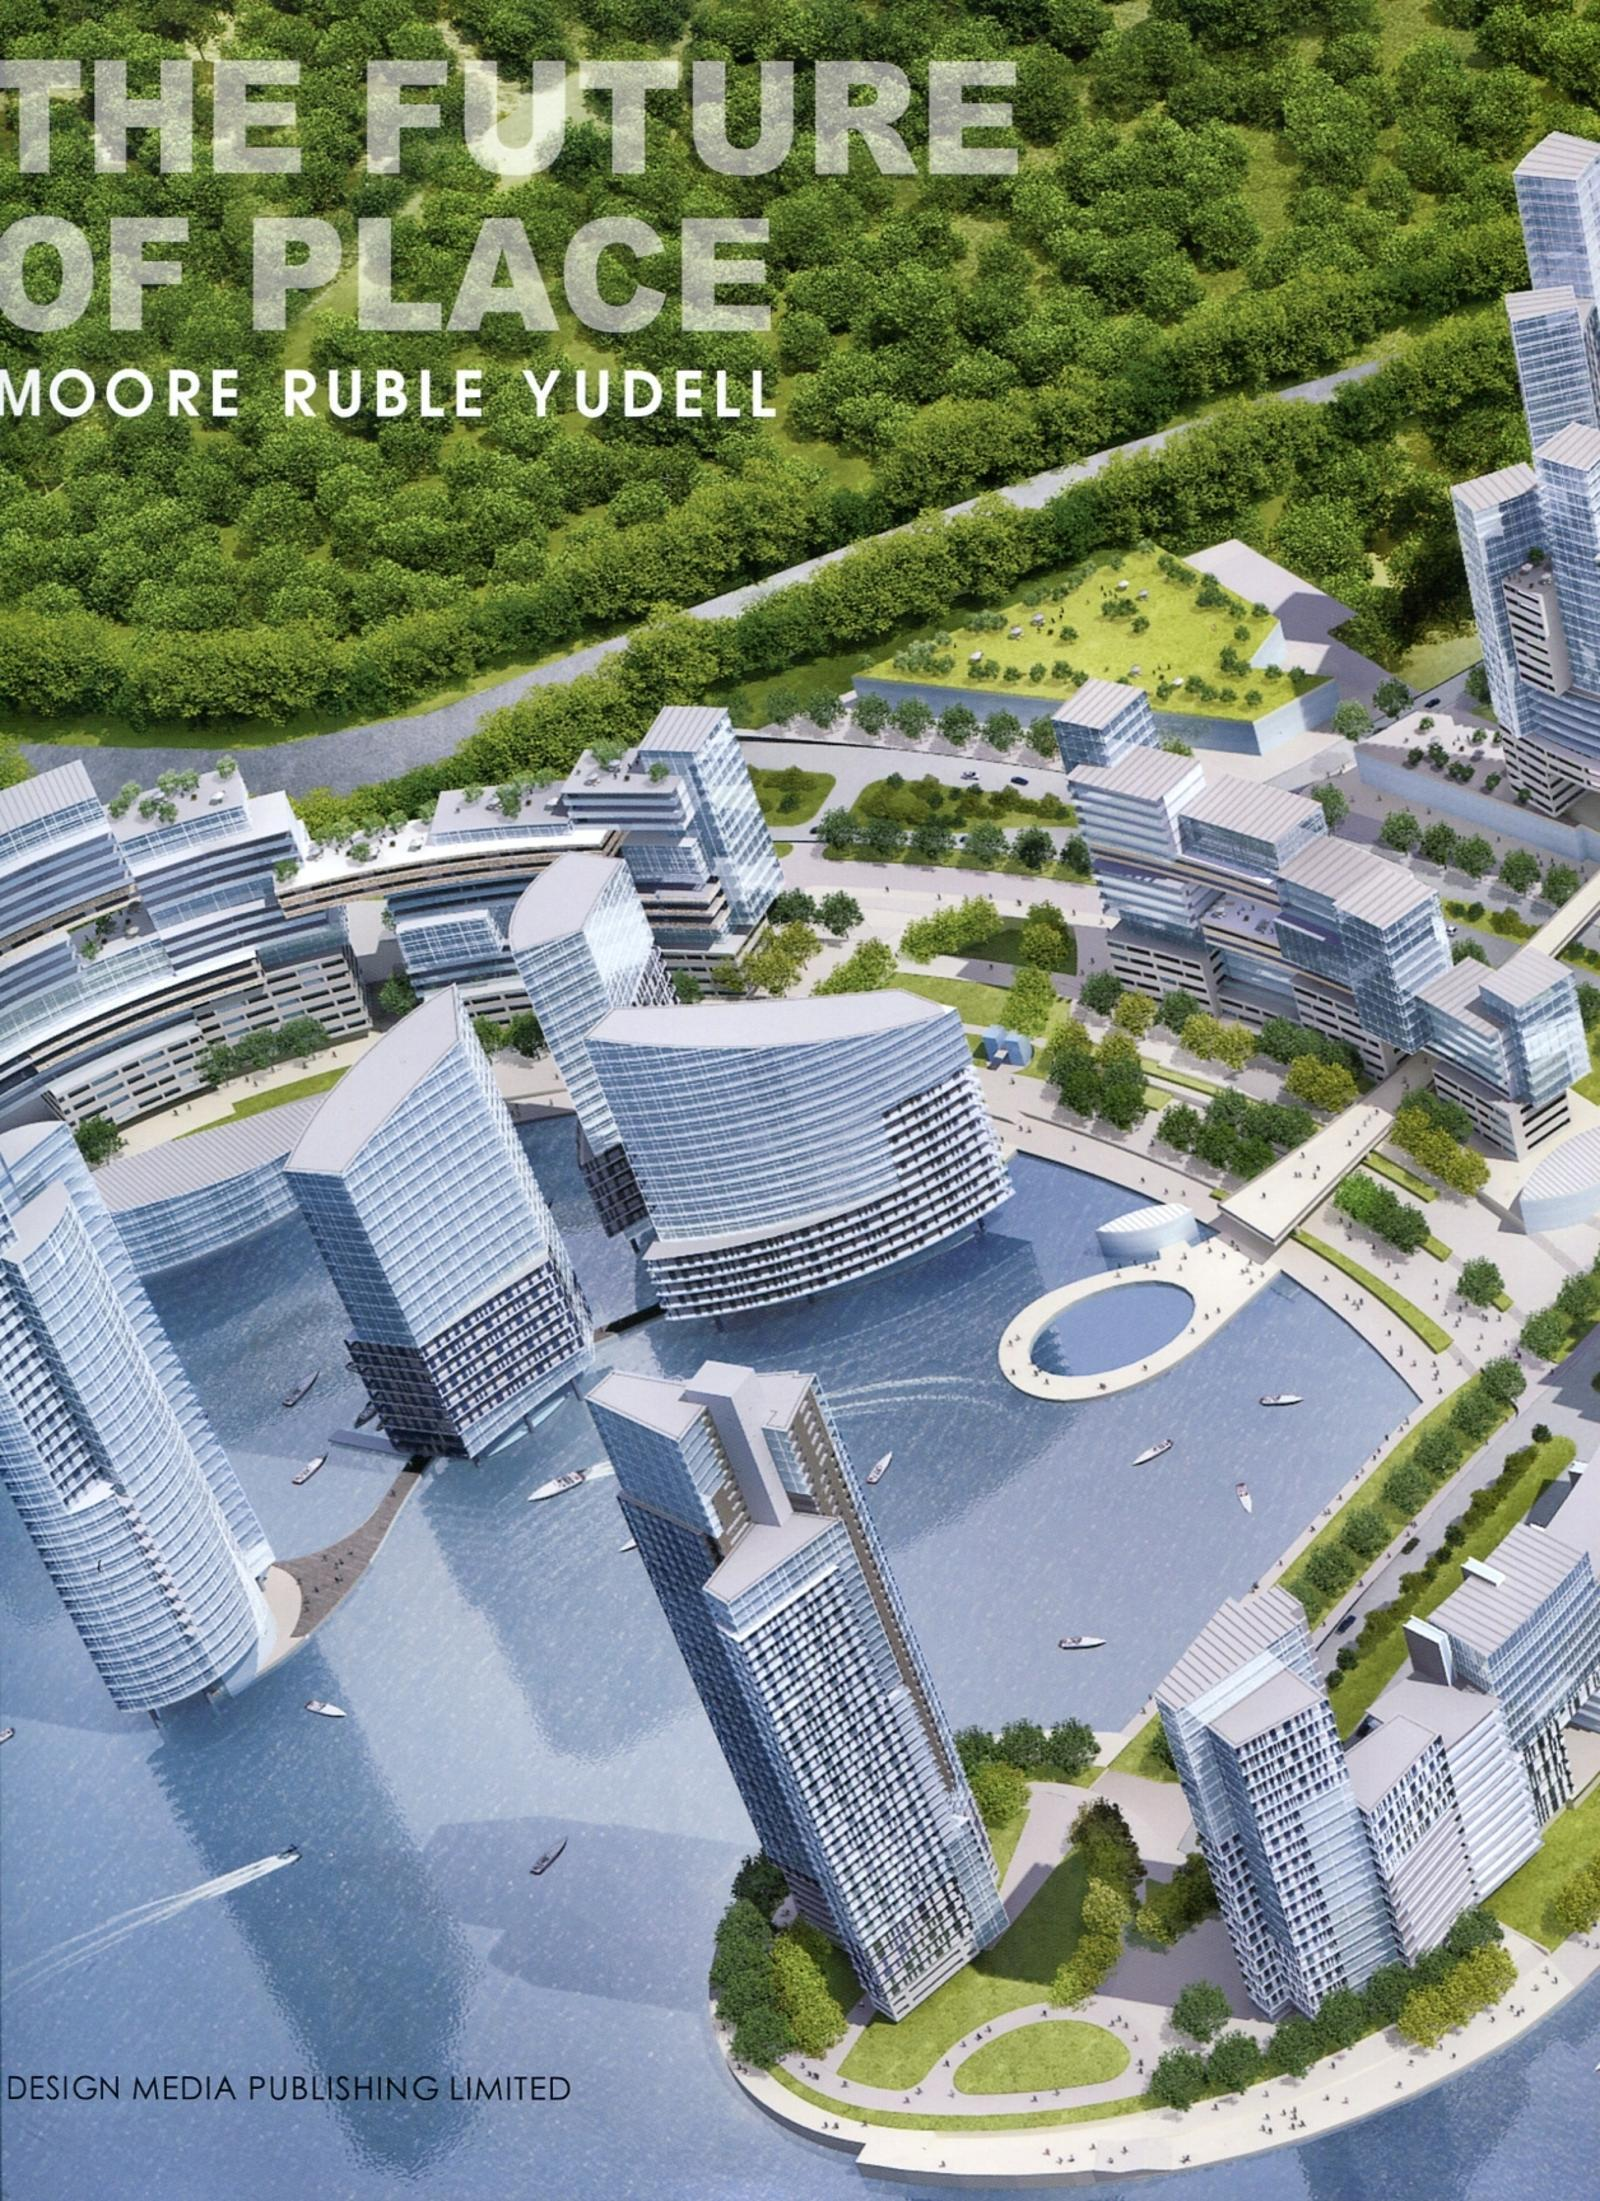 THE FUTURE OF PLACE. MOORE RUBLE YUDELL - MOORE RUBLE YUDELL.